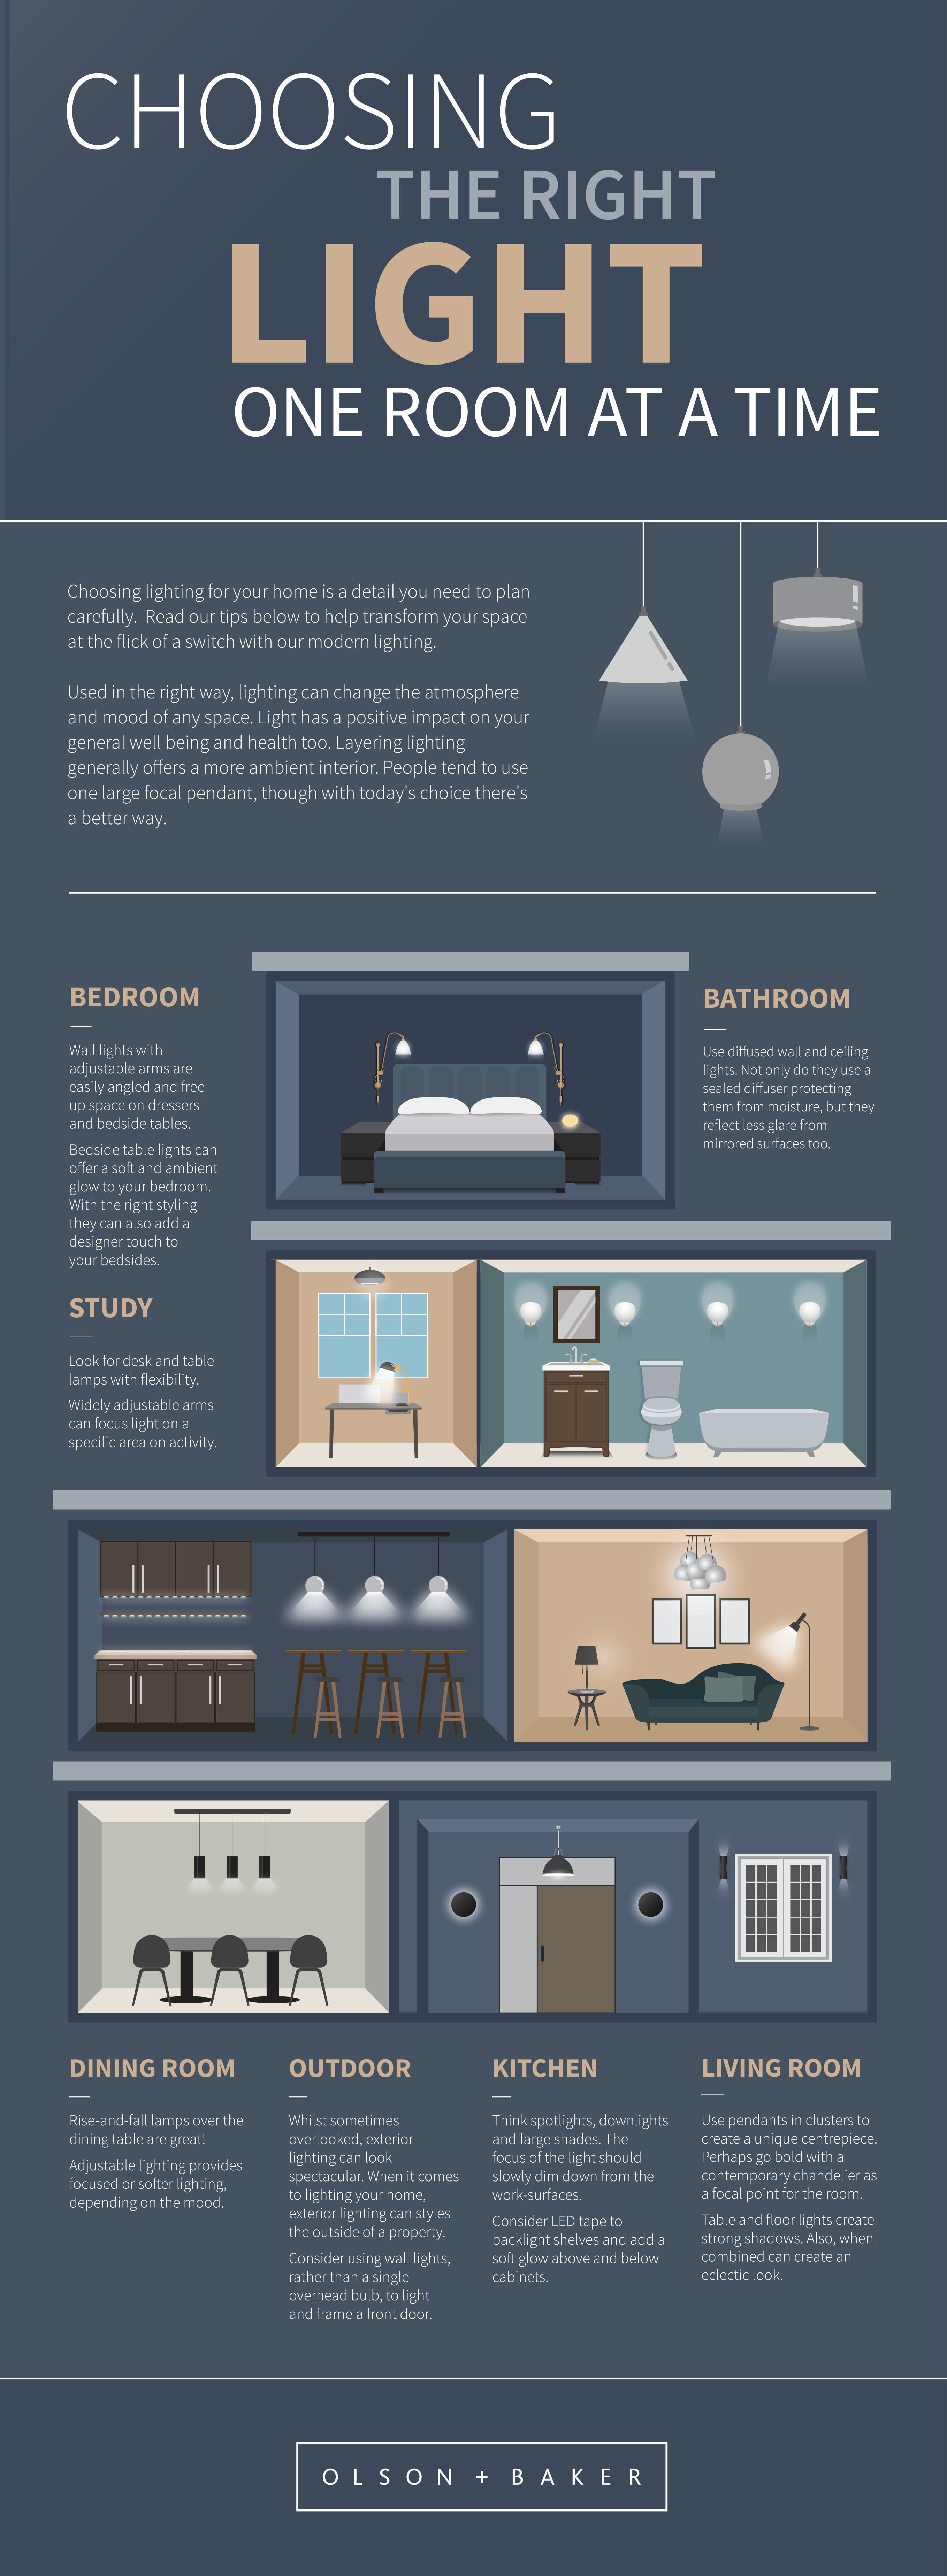 Buying Guide | Choosing The Right Light - One Room At A Time (Infographic)